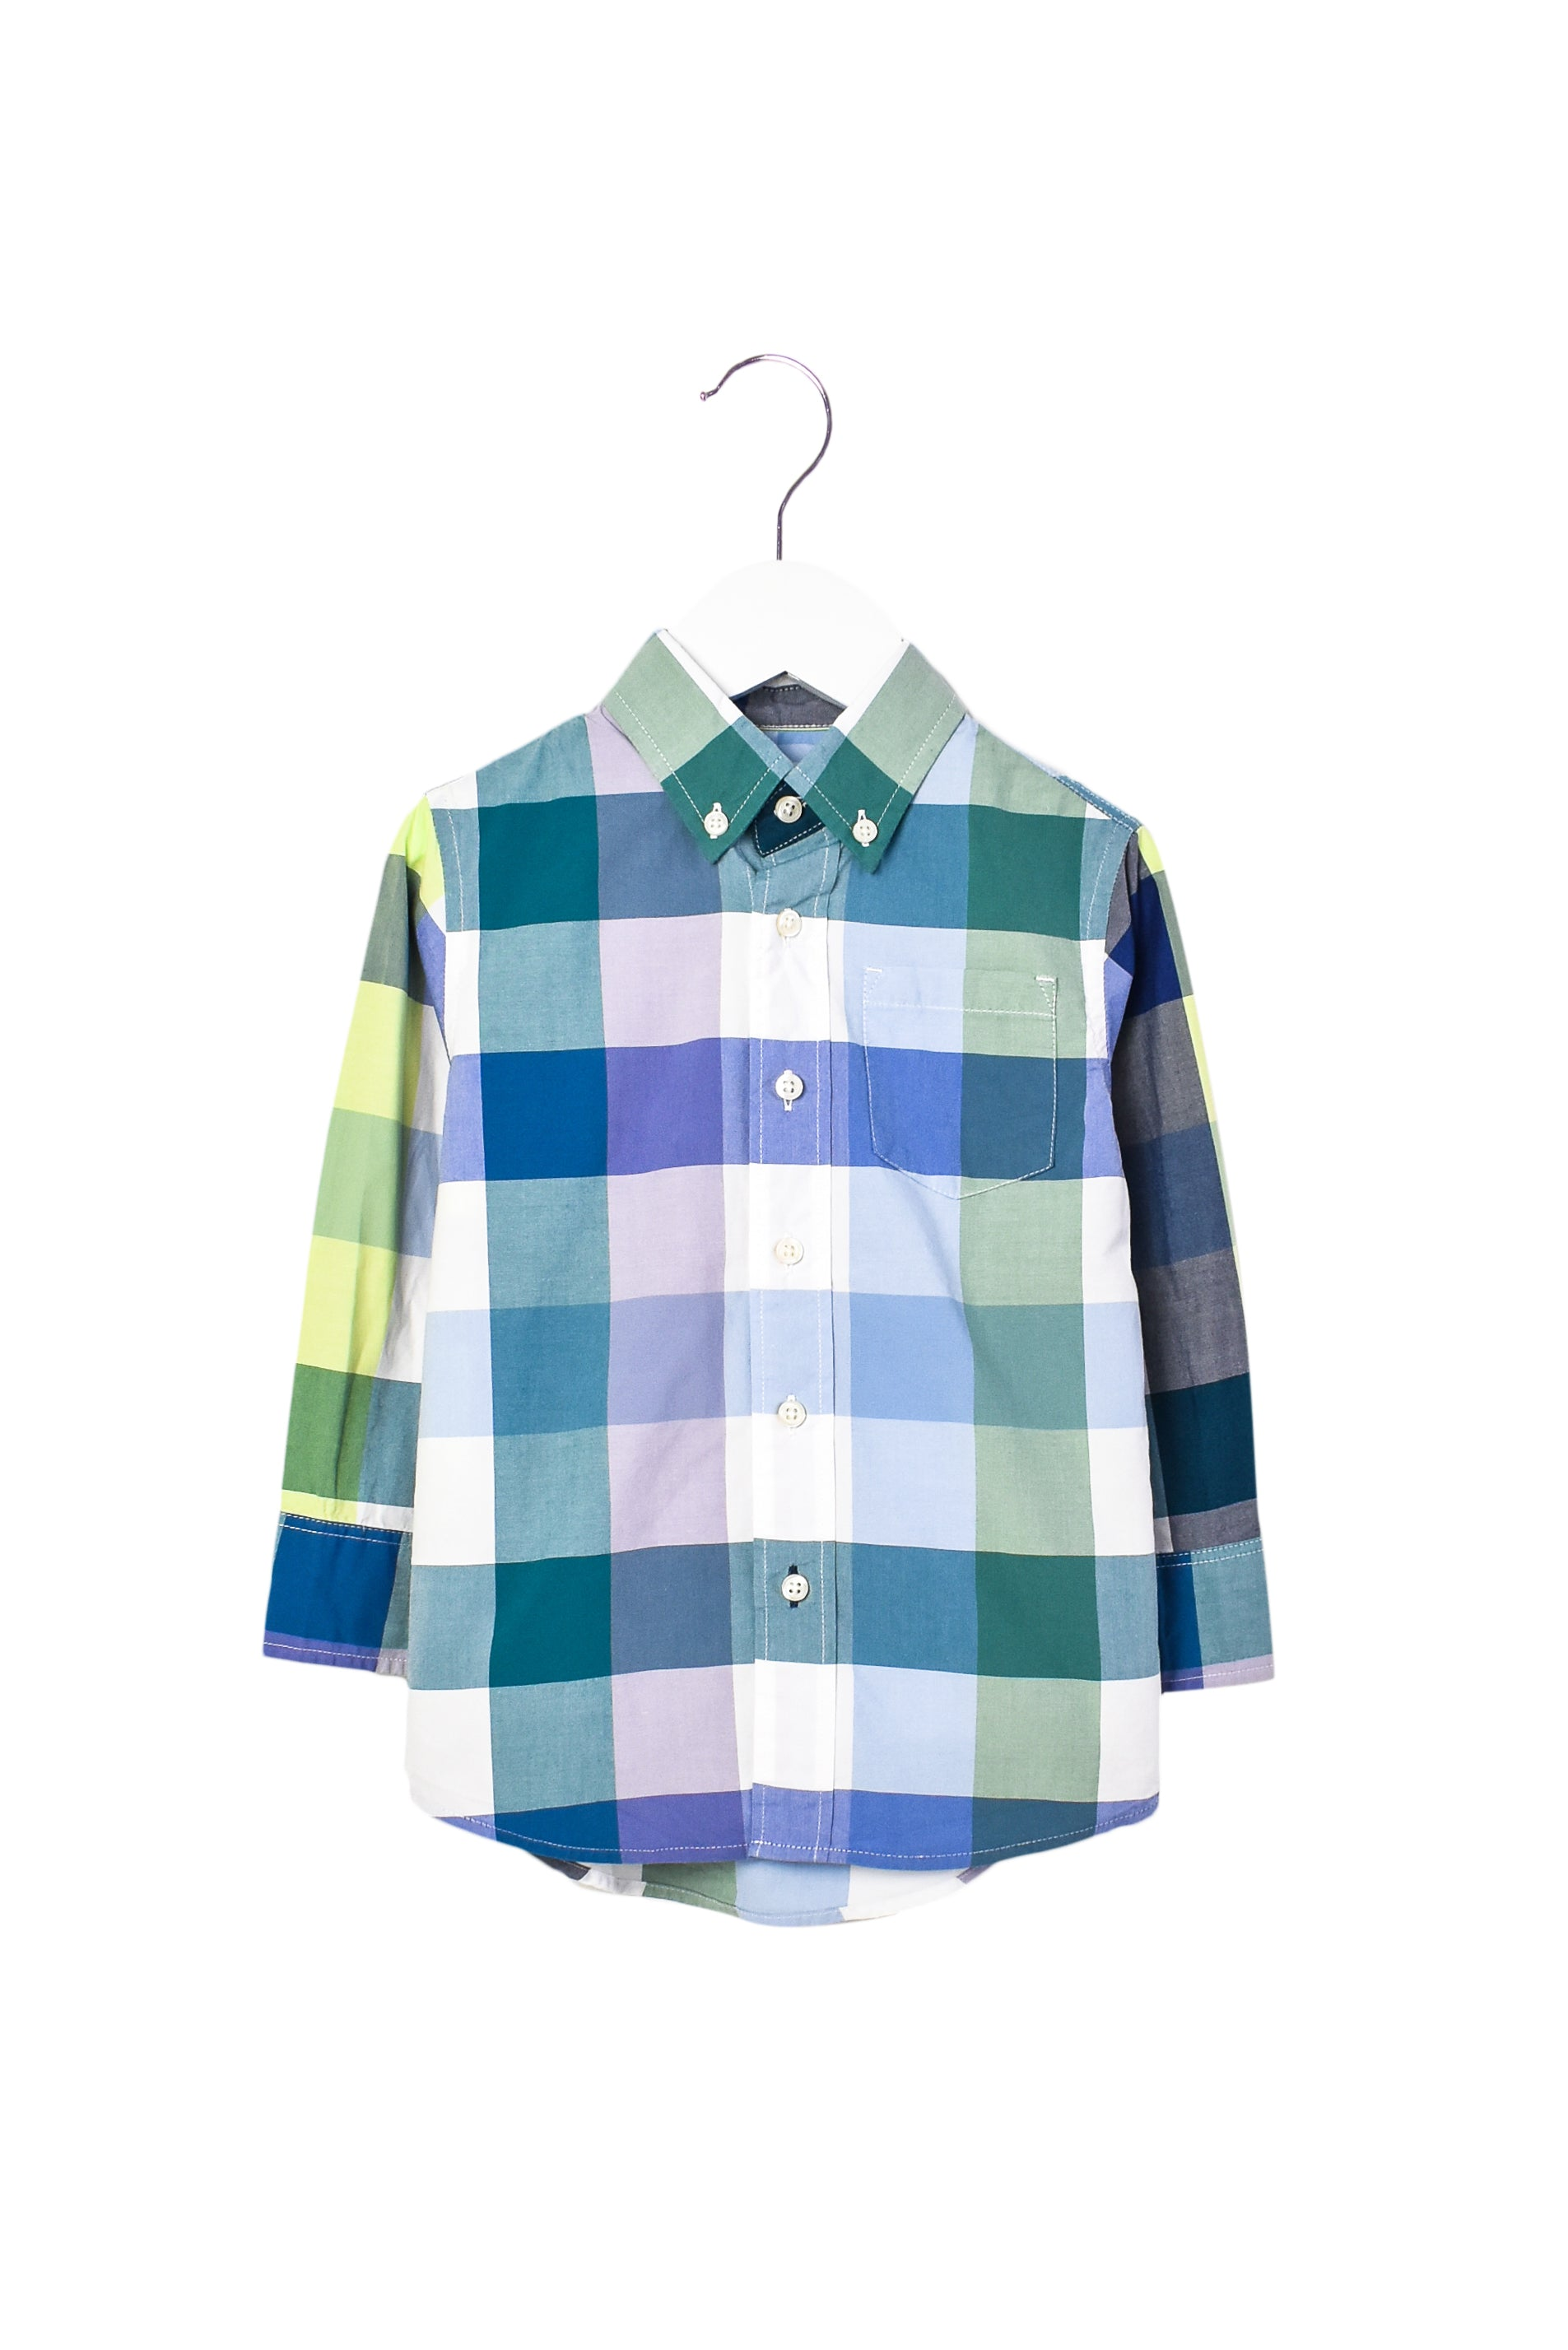 10007837 Crewcuts Kids~Shirt 3T at Retykle